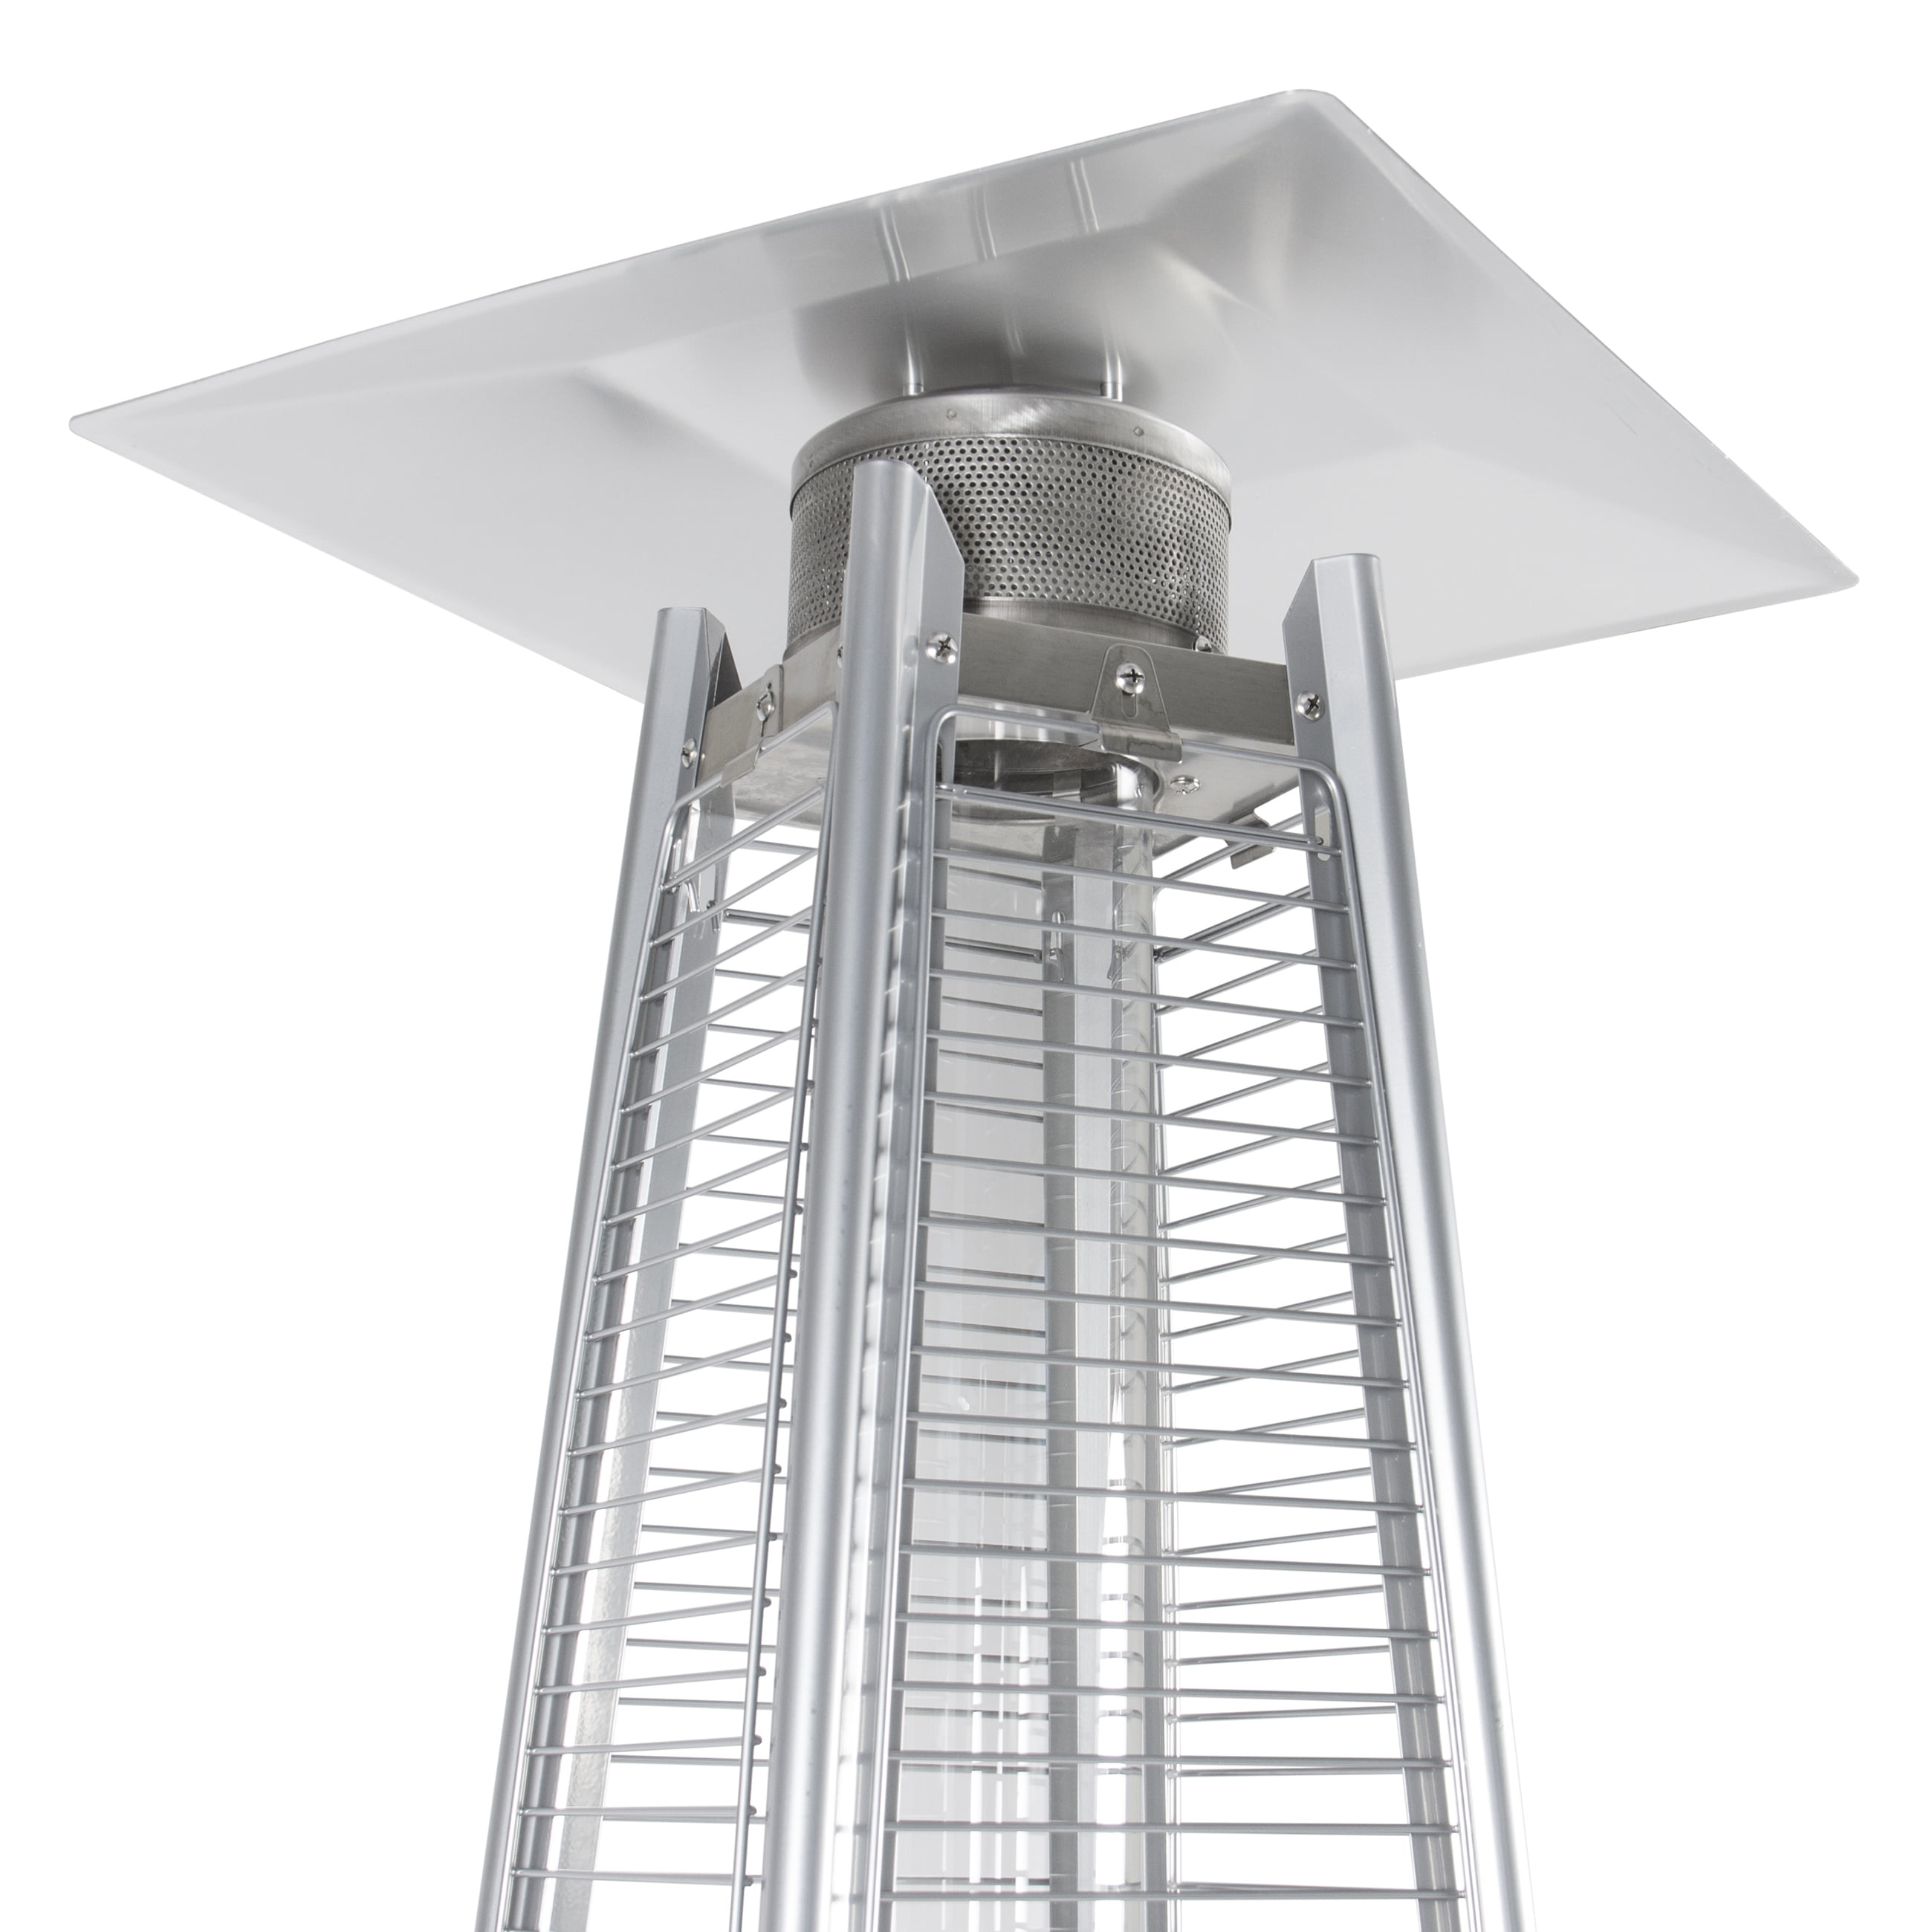 42,000 BTU Stainless Steel Patio Heater Outdoor Pyramid Propane Glass Tube  Dancing Flames   Walmart.com